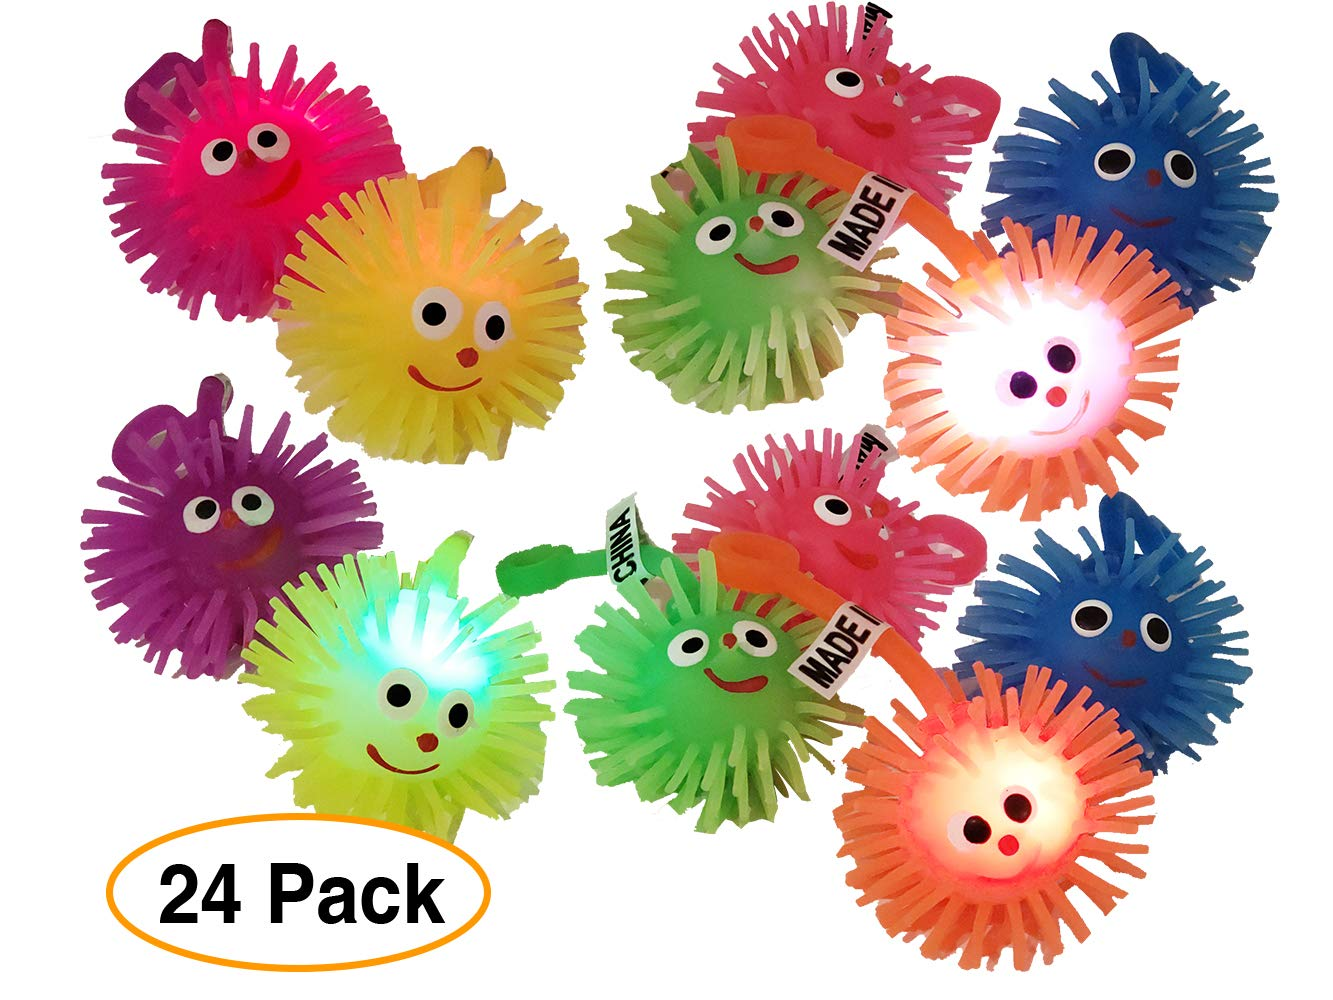 Mini Elastic Balls Expression//Spiky Massage Balls Light Up LED Flashing Rubber 2 for Kids Party goodie bags//giveaways 24 Pack Pro Image